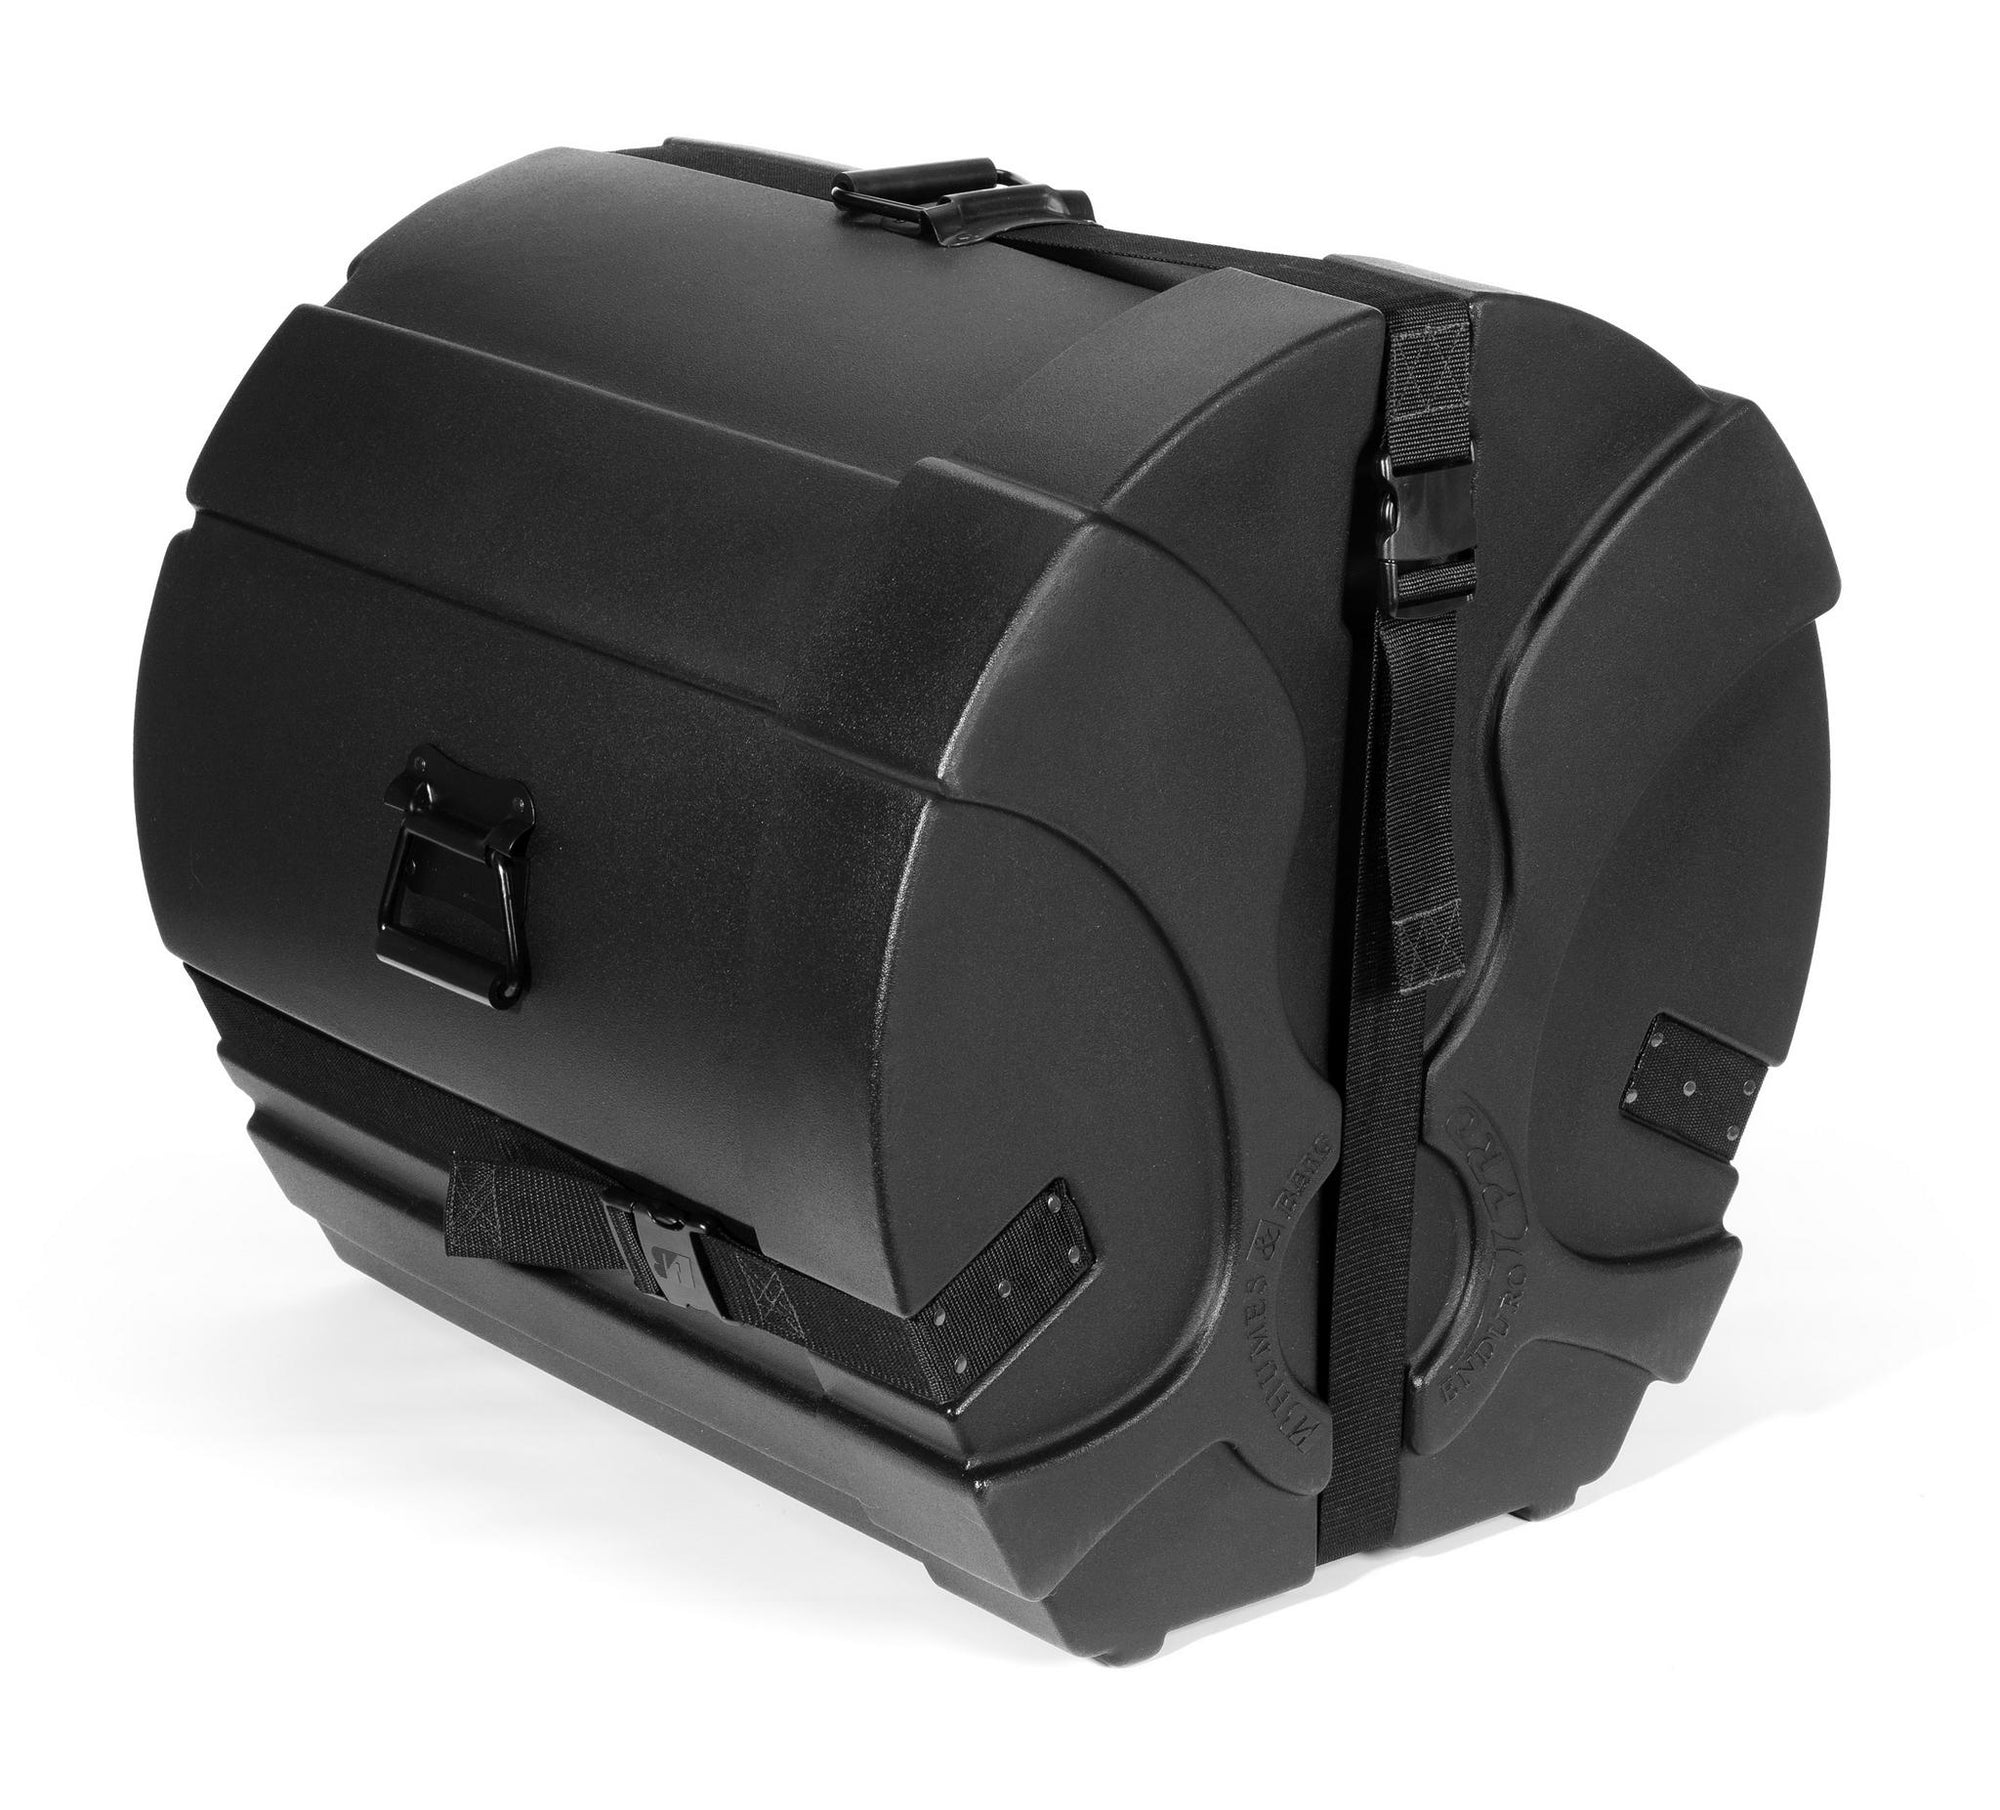 H&B  Enduro Pro 12 x 22 Inches Bass Drum Case